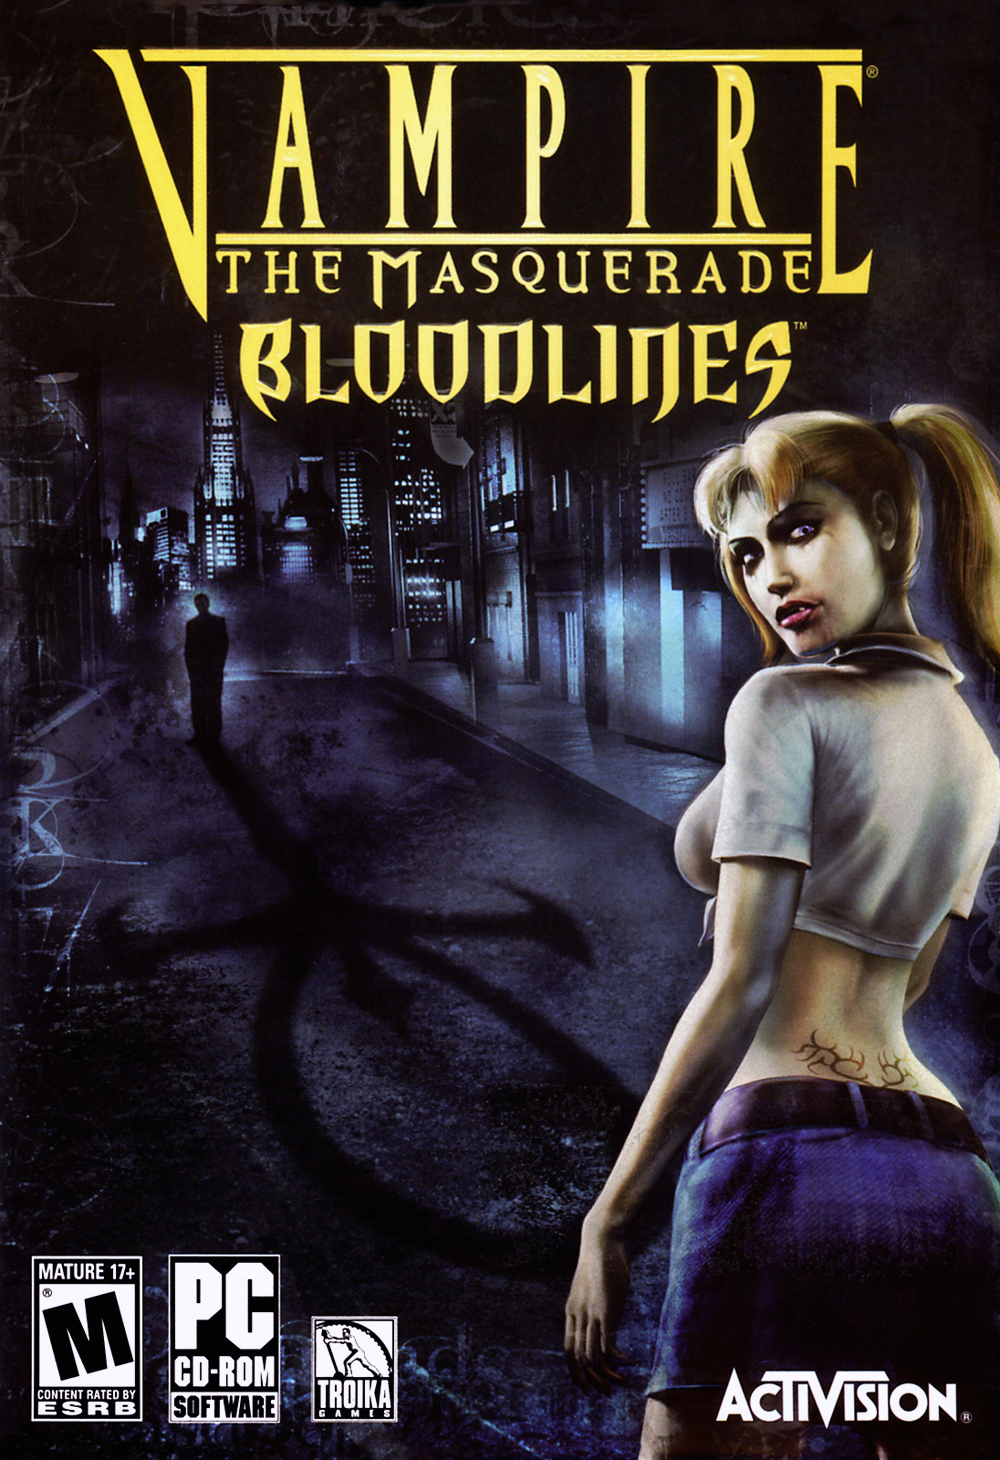 Vampire_-_The_Masquerade_-_Bloodlines_(Cover).png